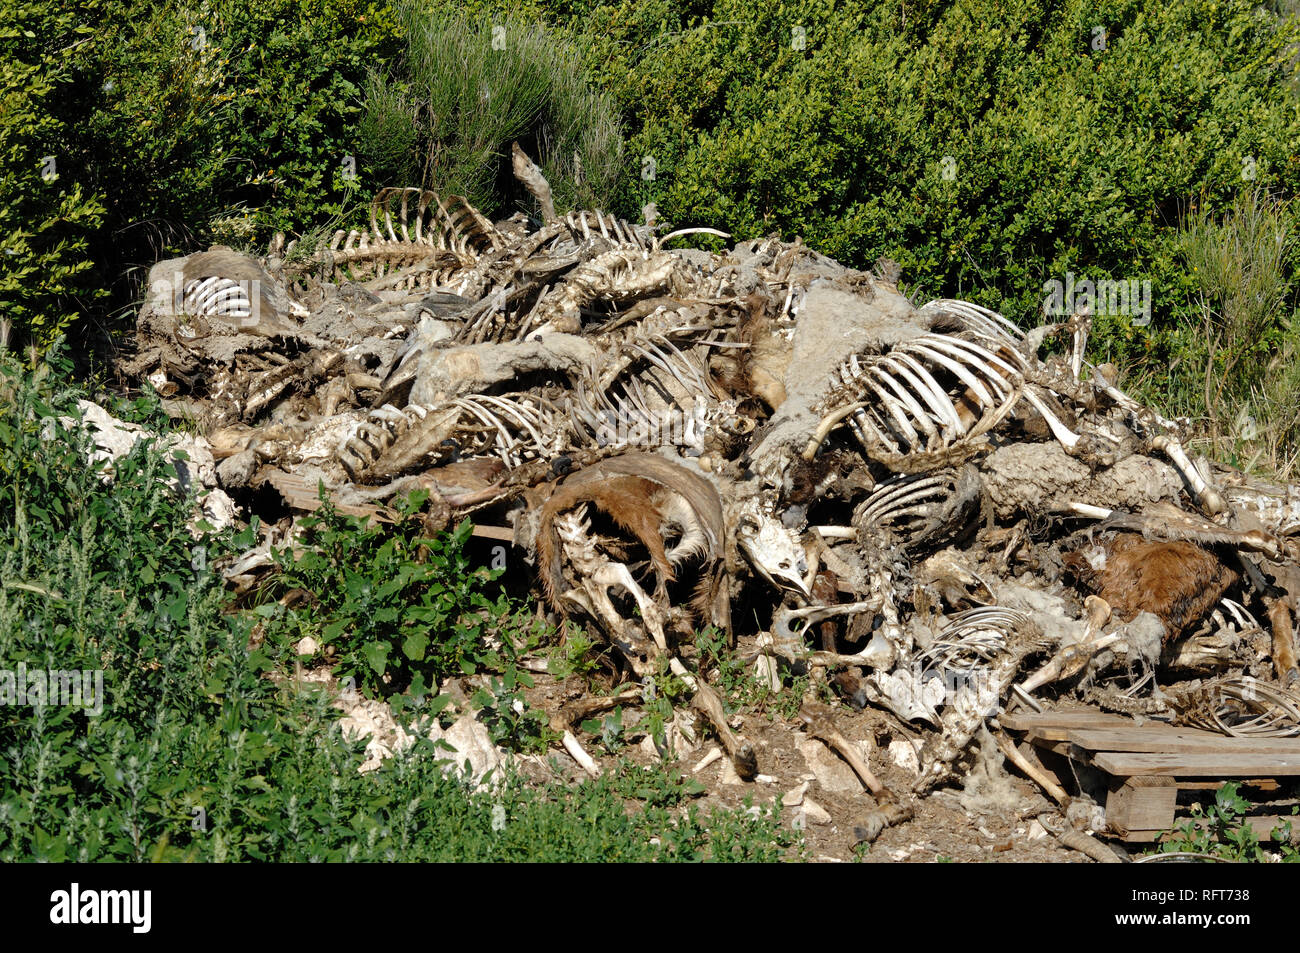 Pile of Sheep Carcasesor Carcasses, Bones or Skeletons, Picked Clean by Vultures in the Verdon Gorge Regional Park Alpes-de-Haute-Provence France - Stock Image